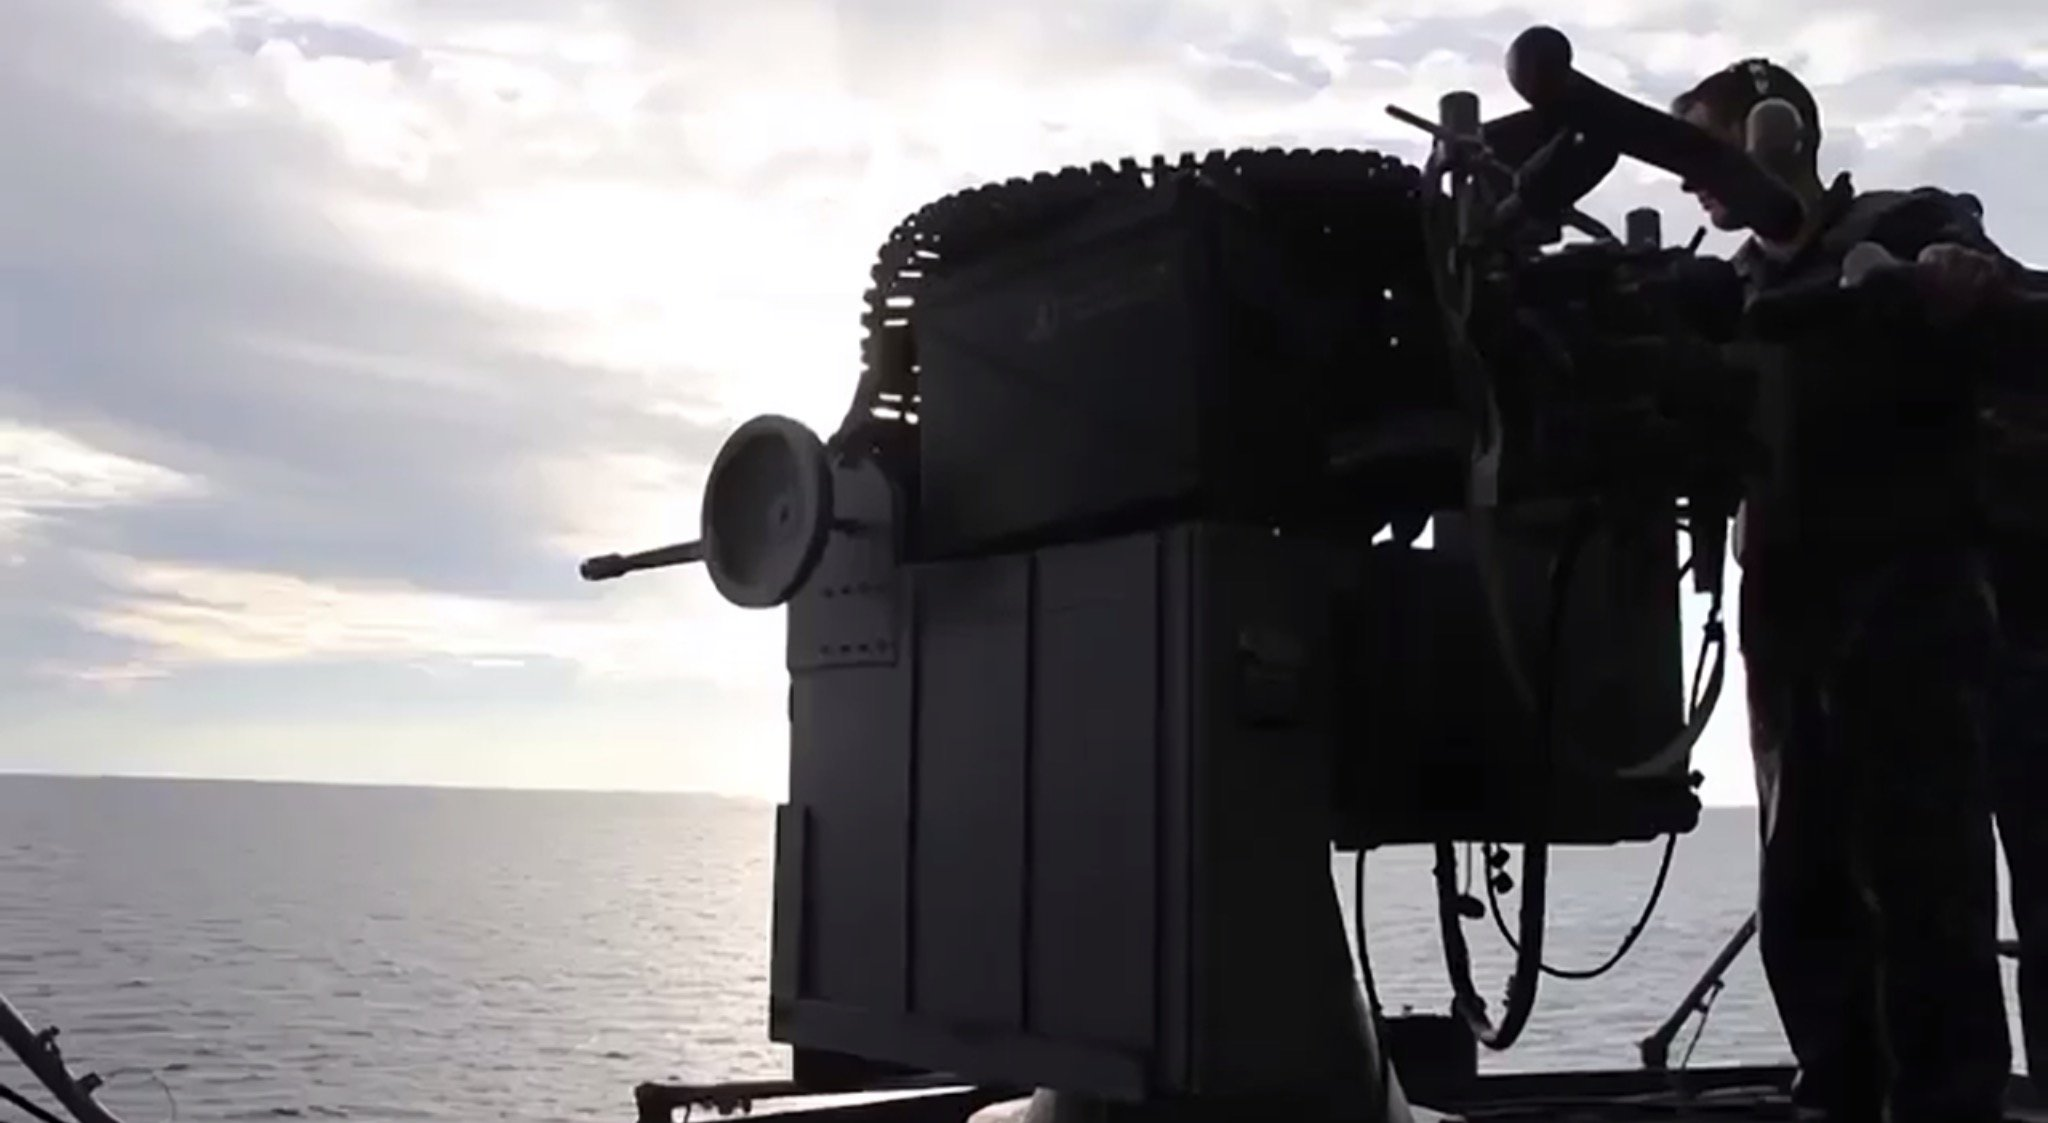 Watch U.S. Sailors Fire The Mk38/M242 Bushmaster From The USS Kearsarge Featured